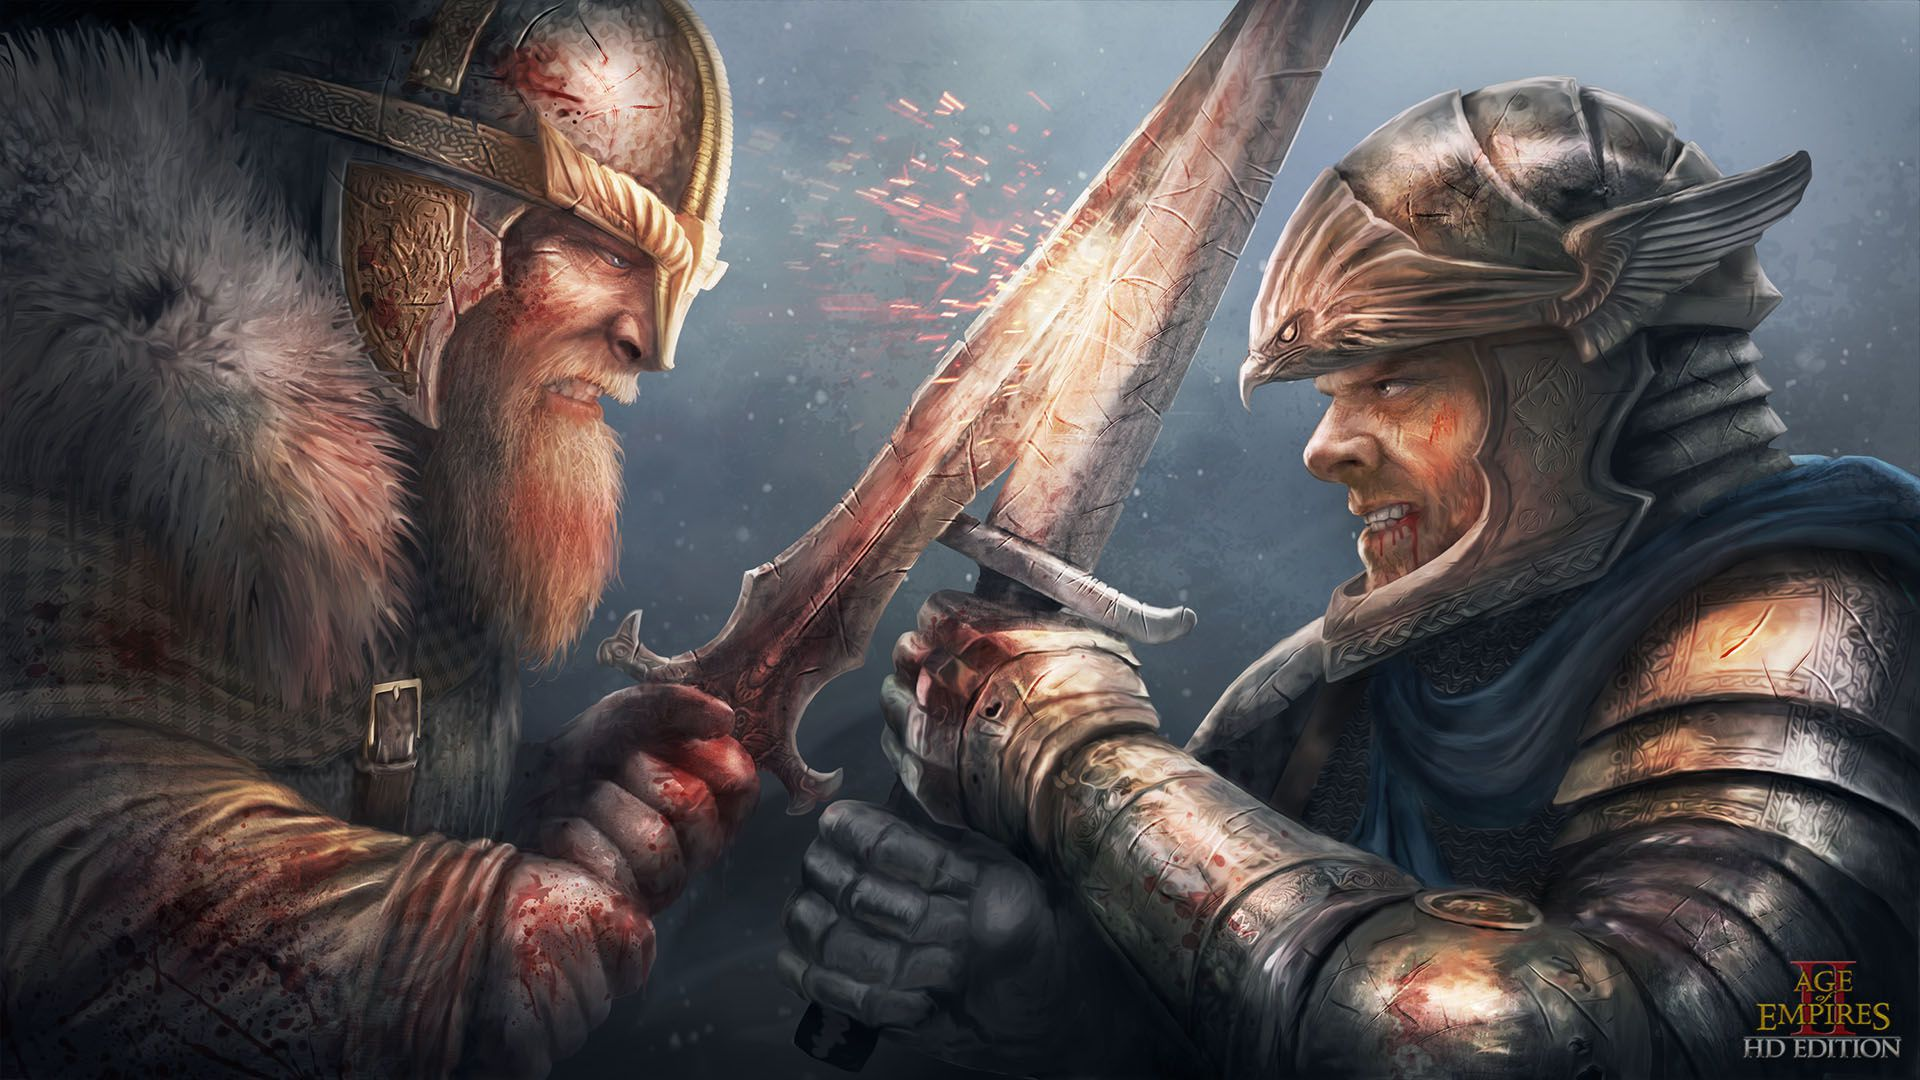 Age Of Empires 2 Wallpaper Pack